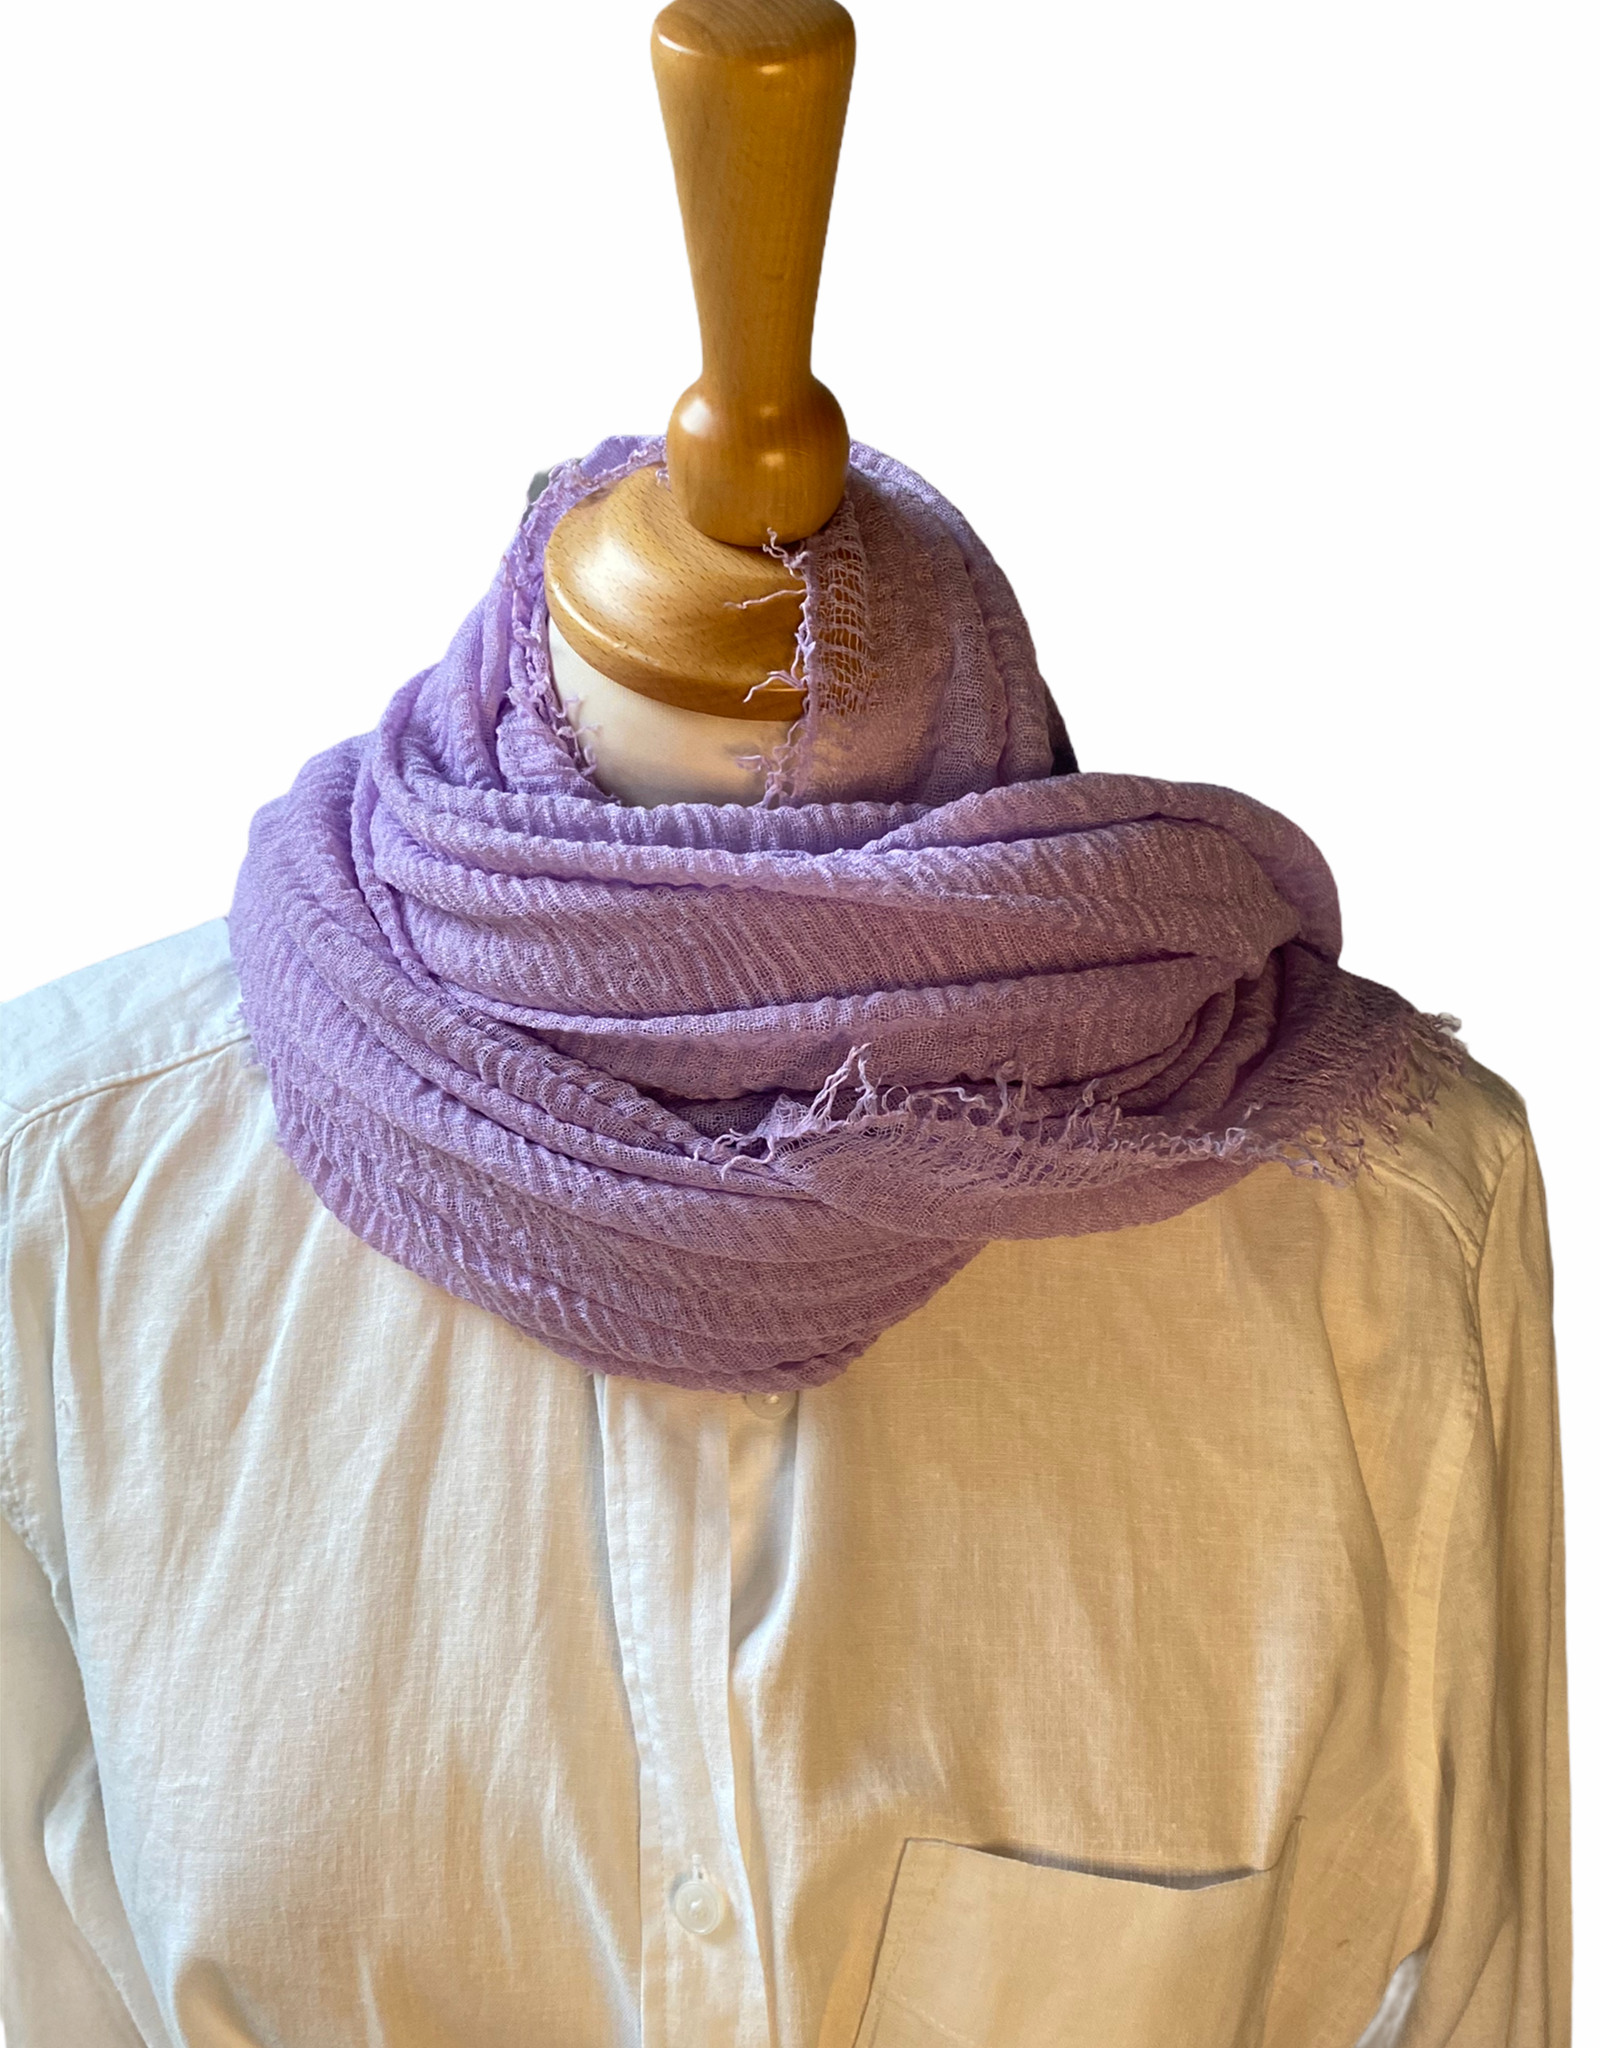 Cotton woven scarf in many colors